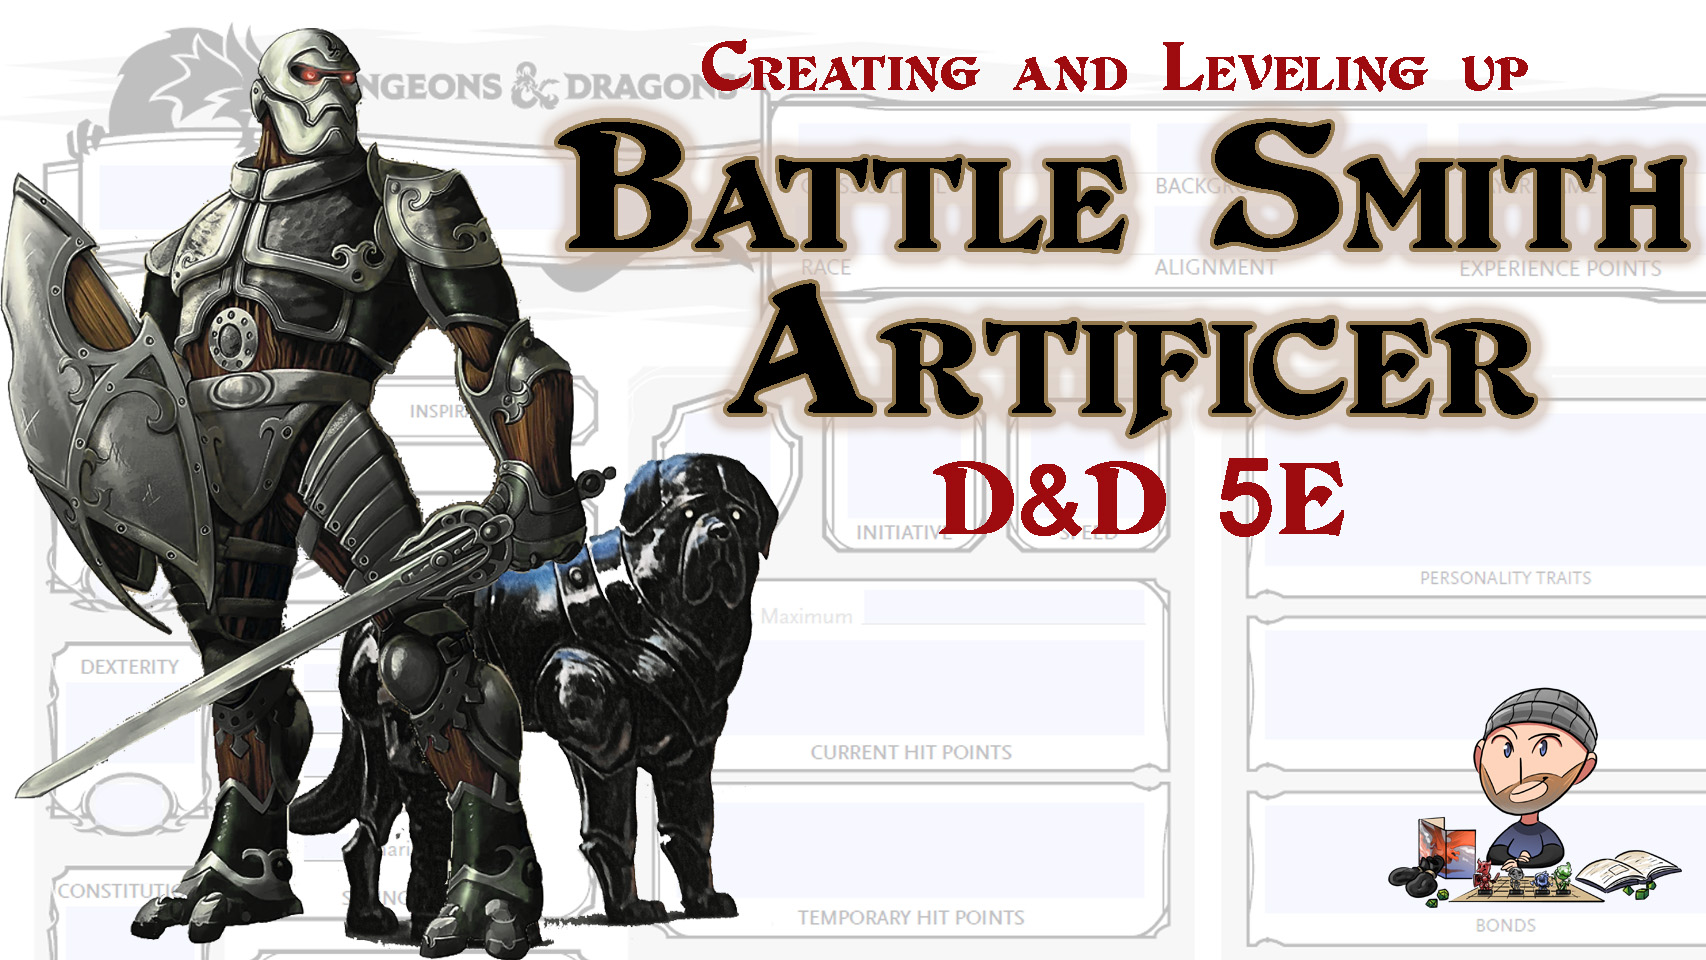 D&D 5E Battle Smith Artificer Build